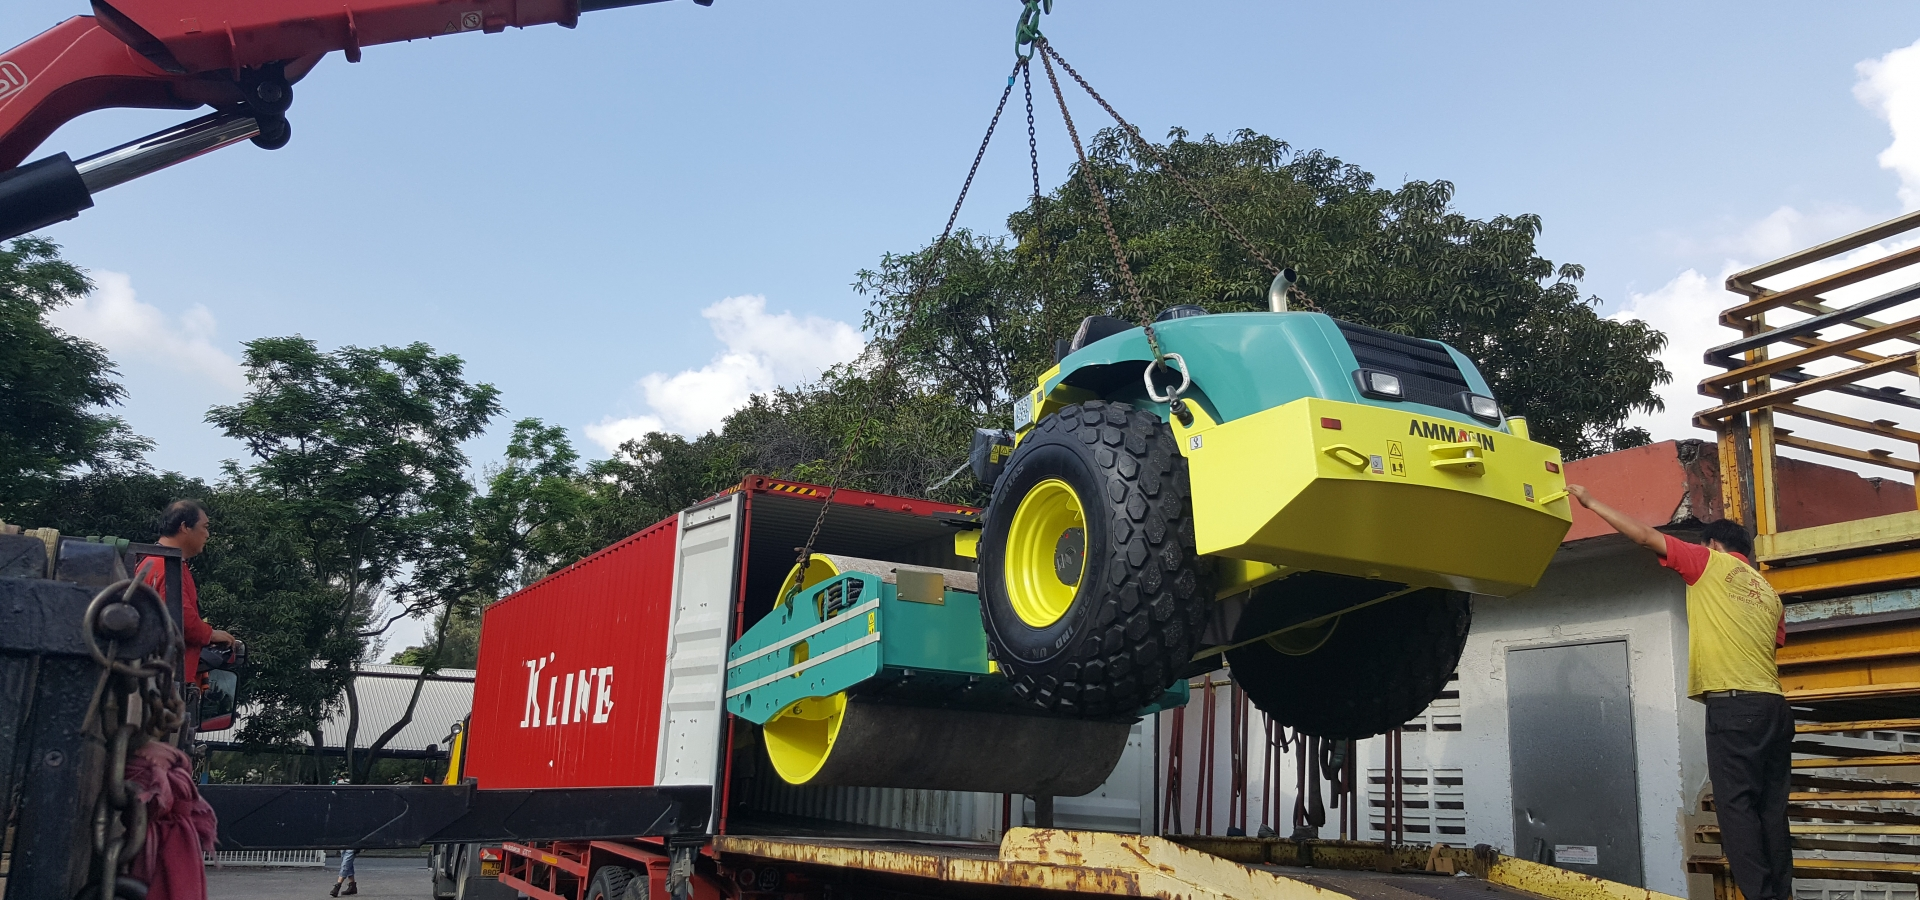 Lorry Crane Lifting Forklift Logistics Transportation Construction